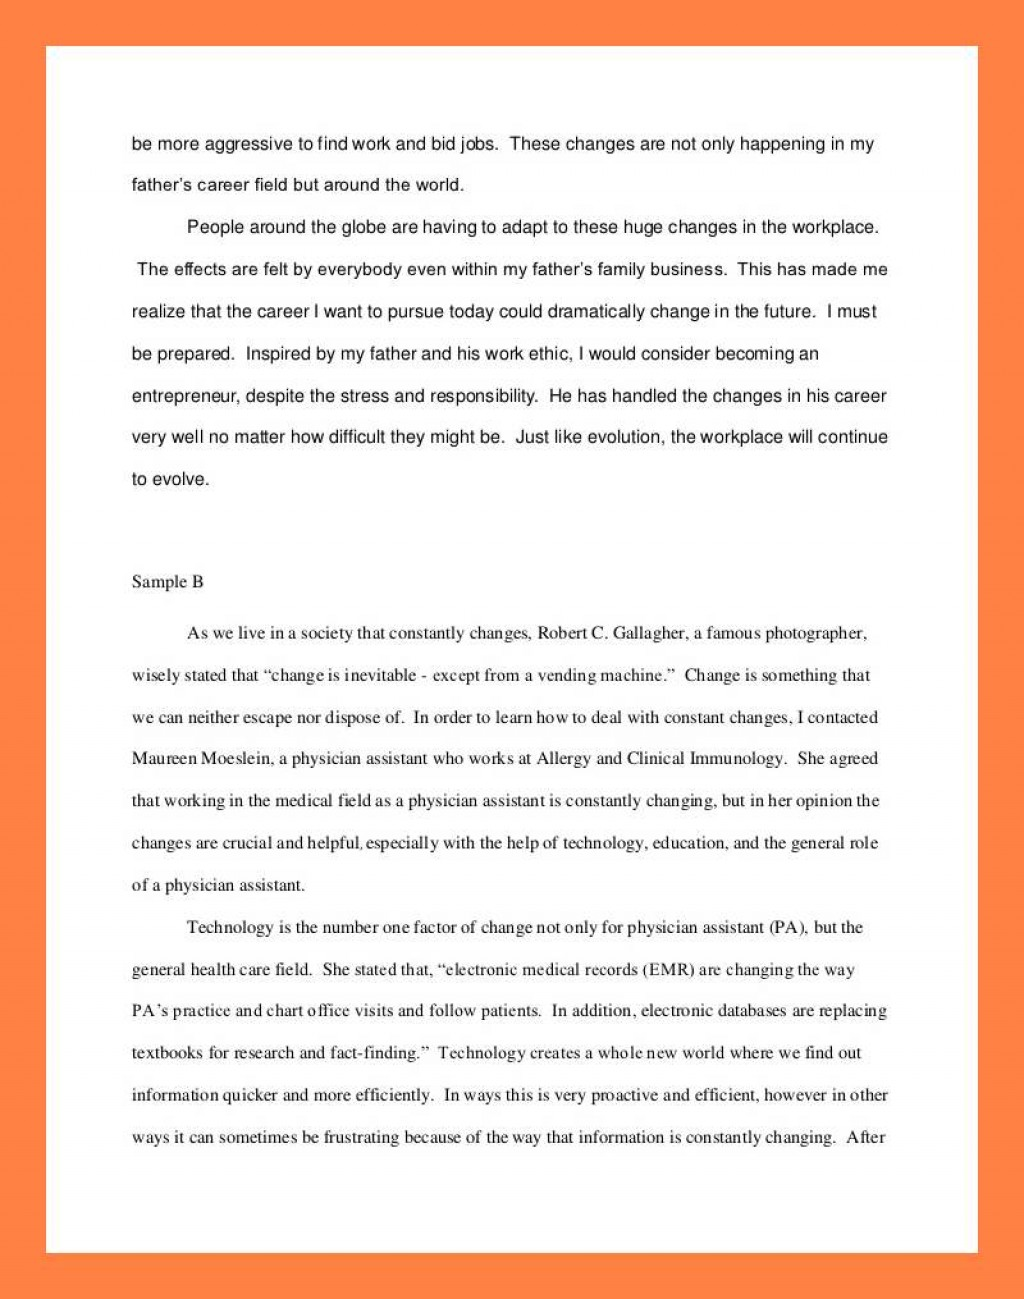 012 Interview Essay Example Examples Of Student Reflections Shocking Introduction Sample Mla Format Large